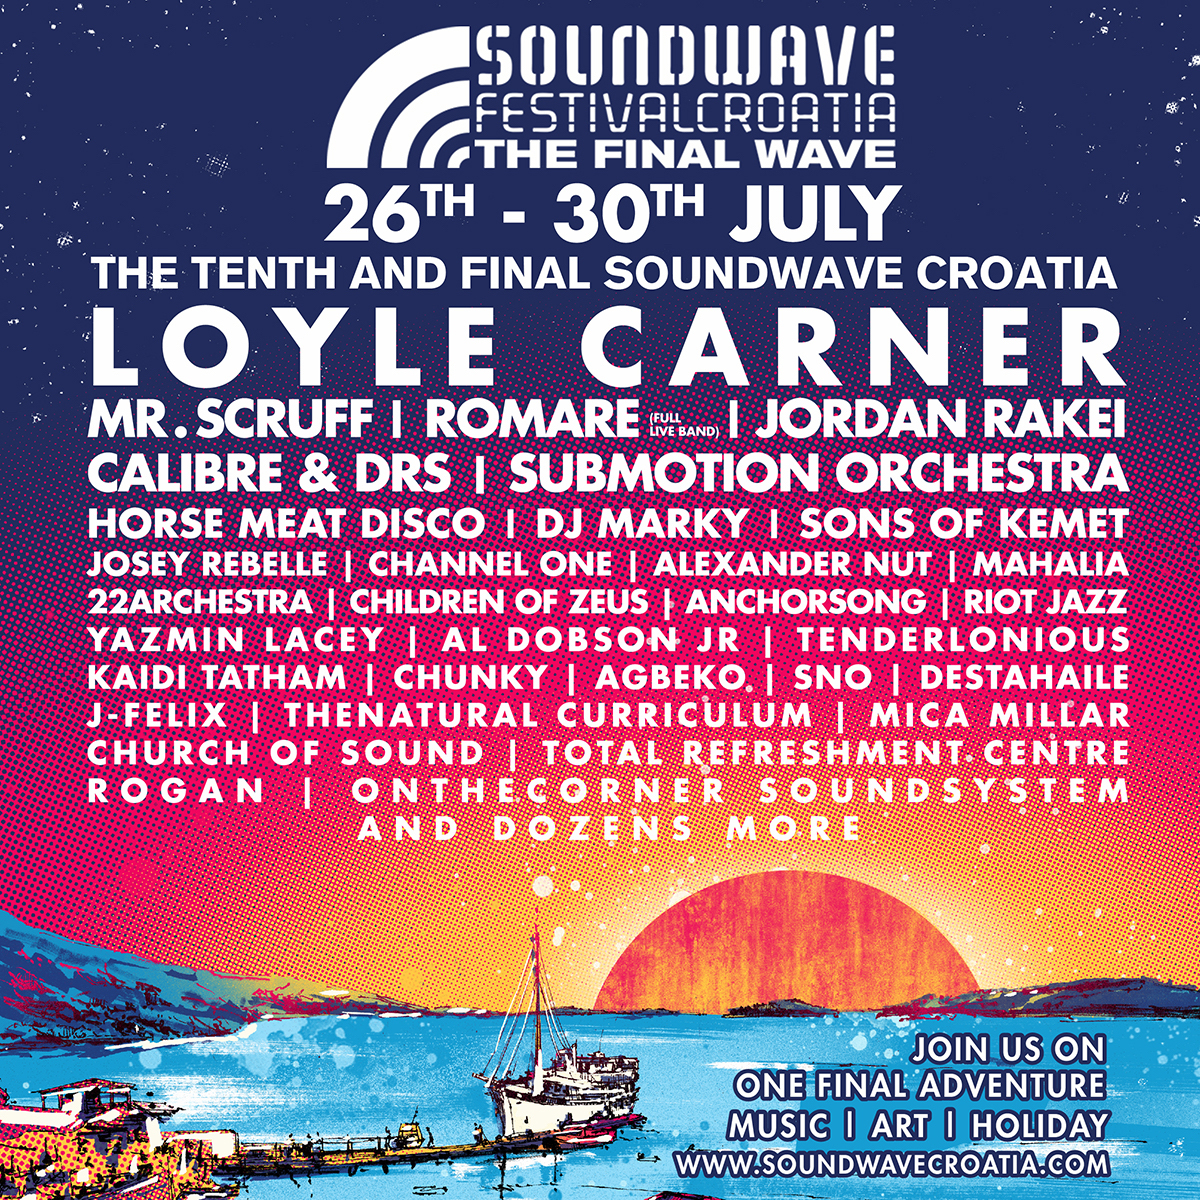 Soundwave 2018 Line-Up